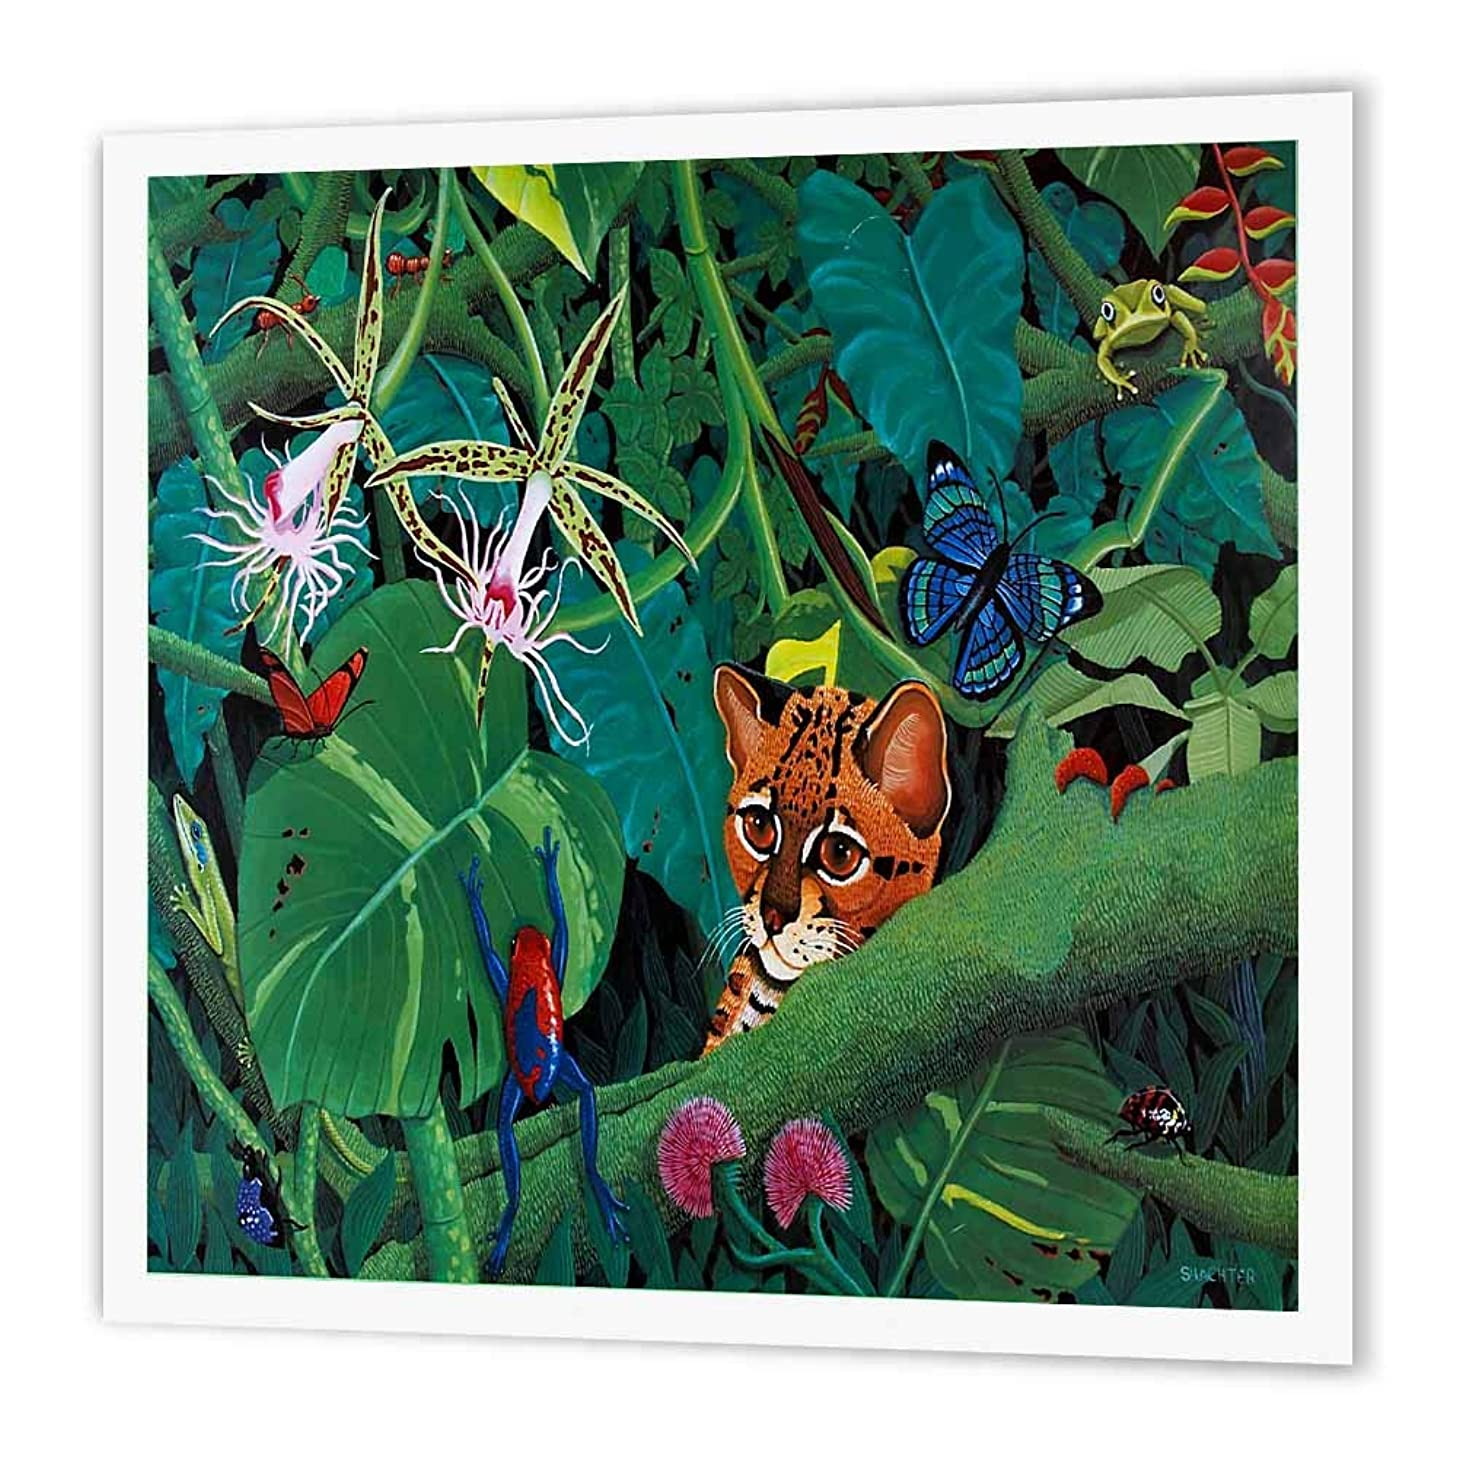 3dRose ht_3216_2 Rainforest Margay-Iron on Heat Transfer Paper for White Material, 6 by 6-Inch